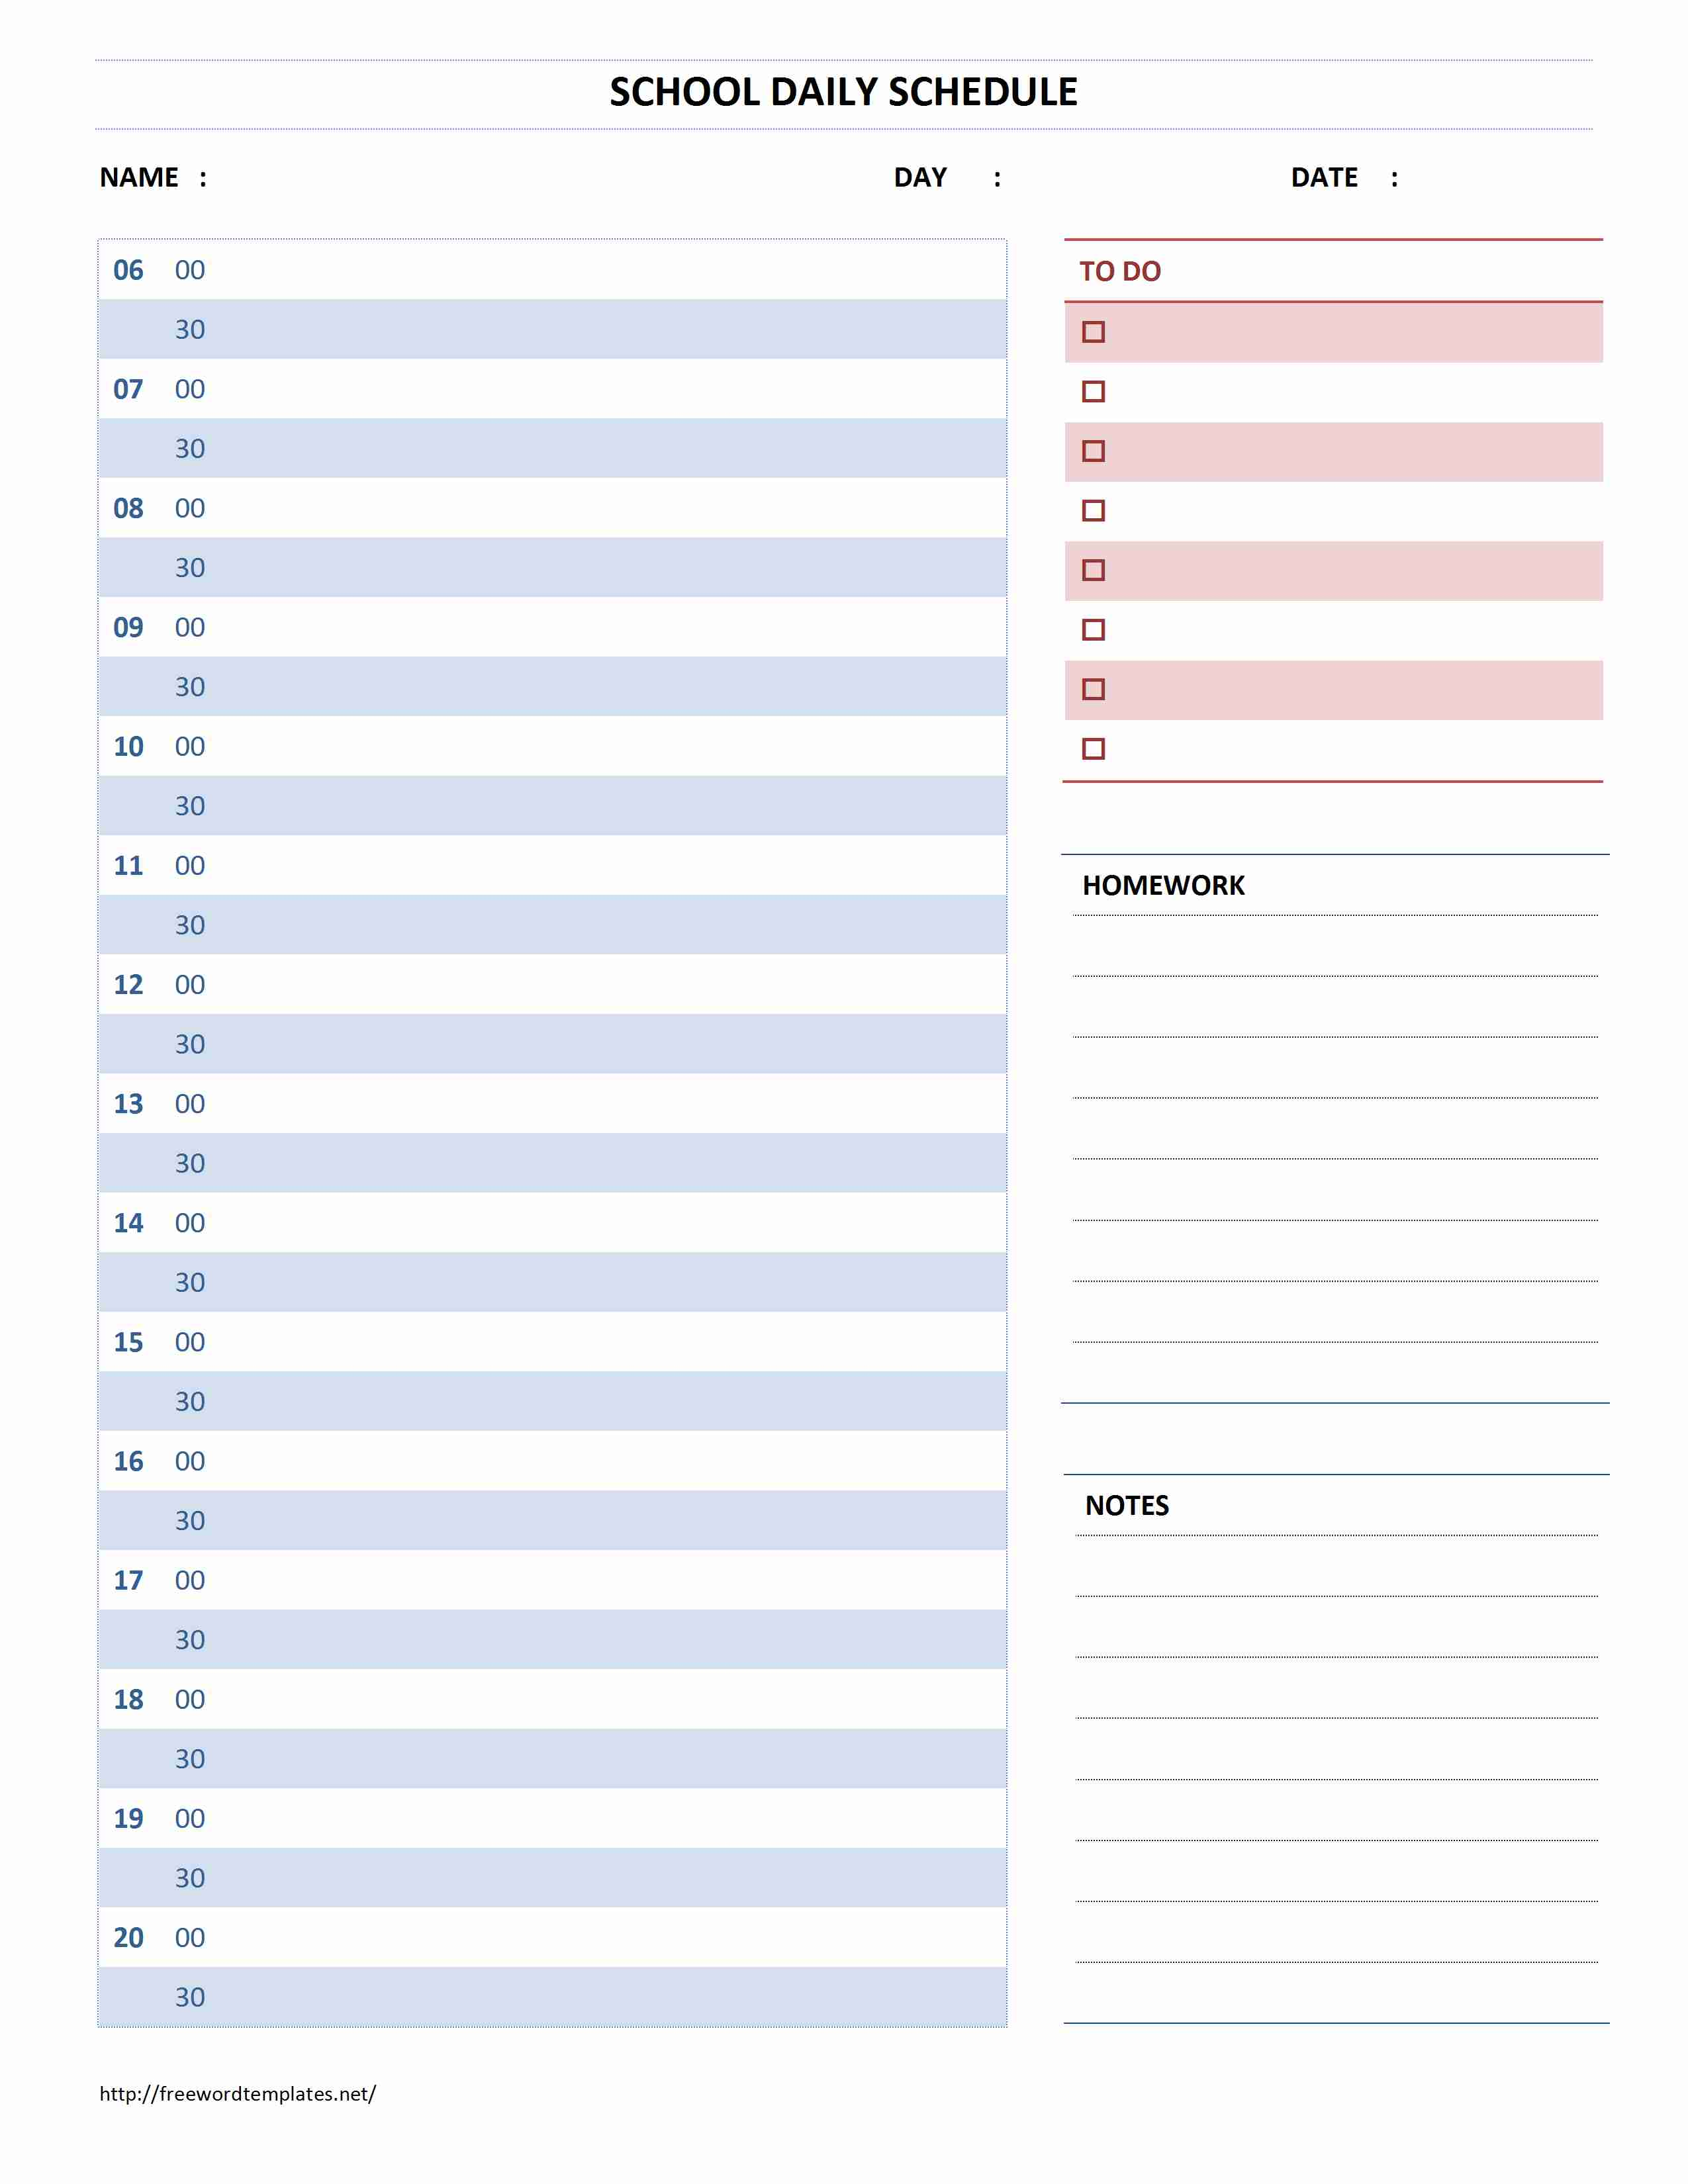 Perfect Freewordtemplates.net And Daily Calendar Template Word